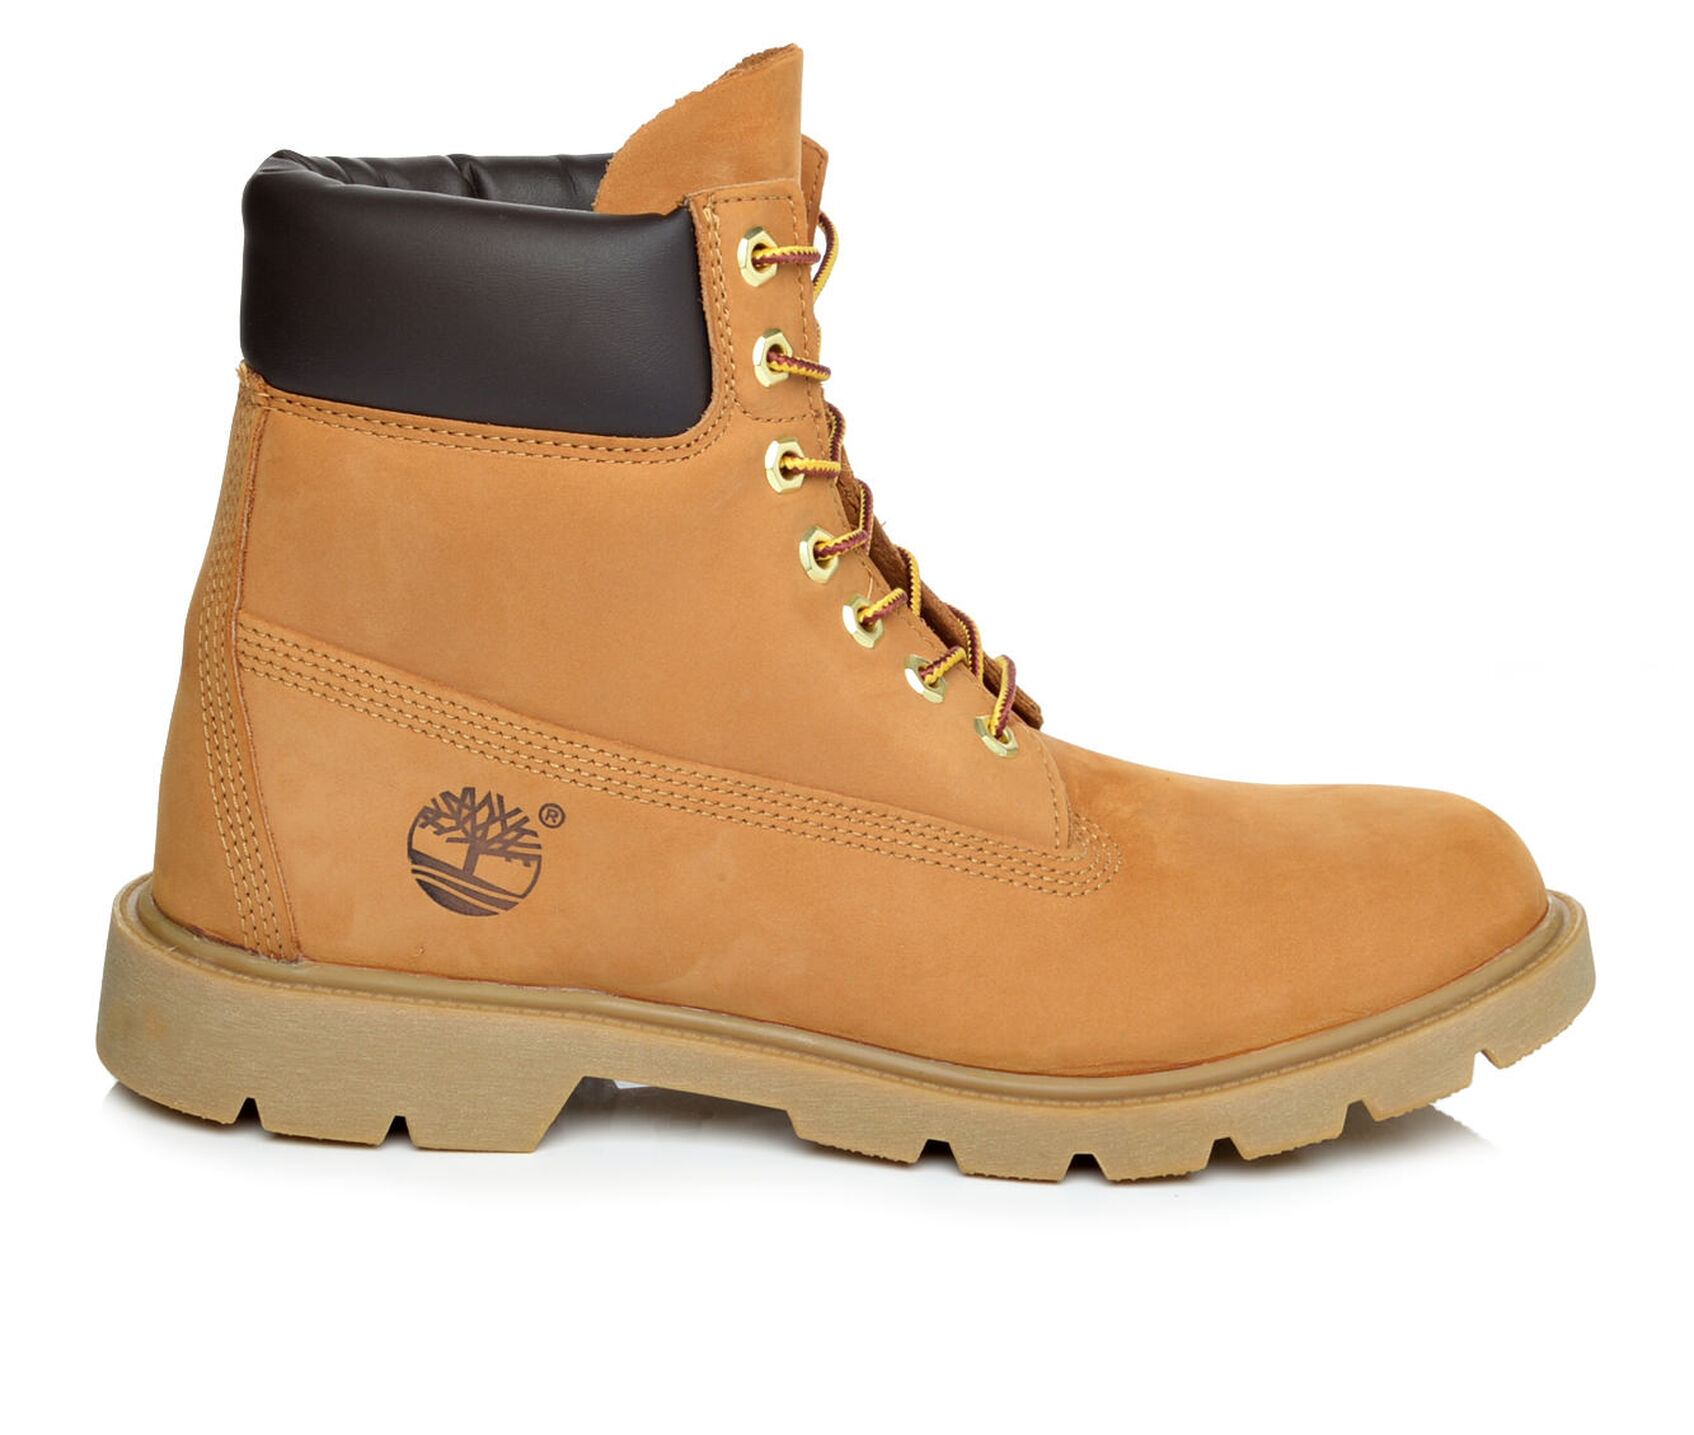 Timberland Shoe Size Fit